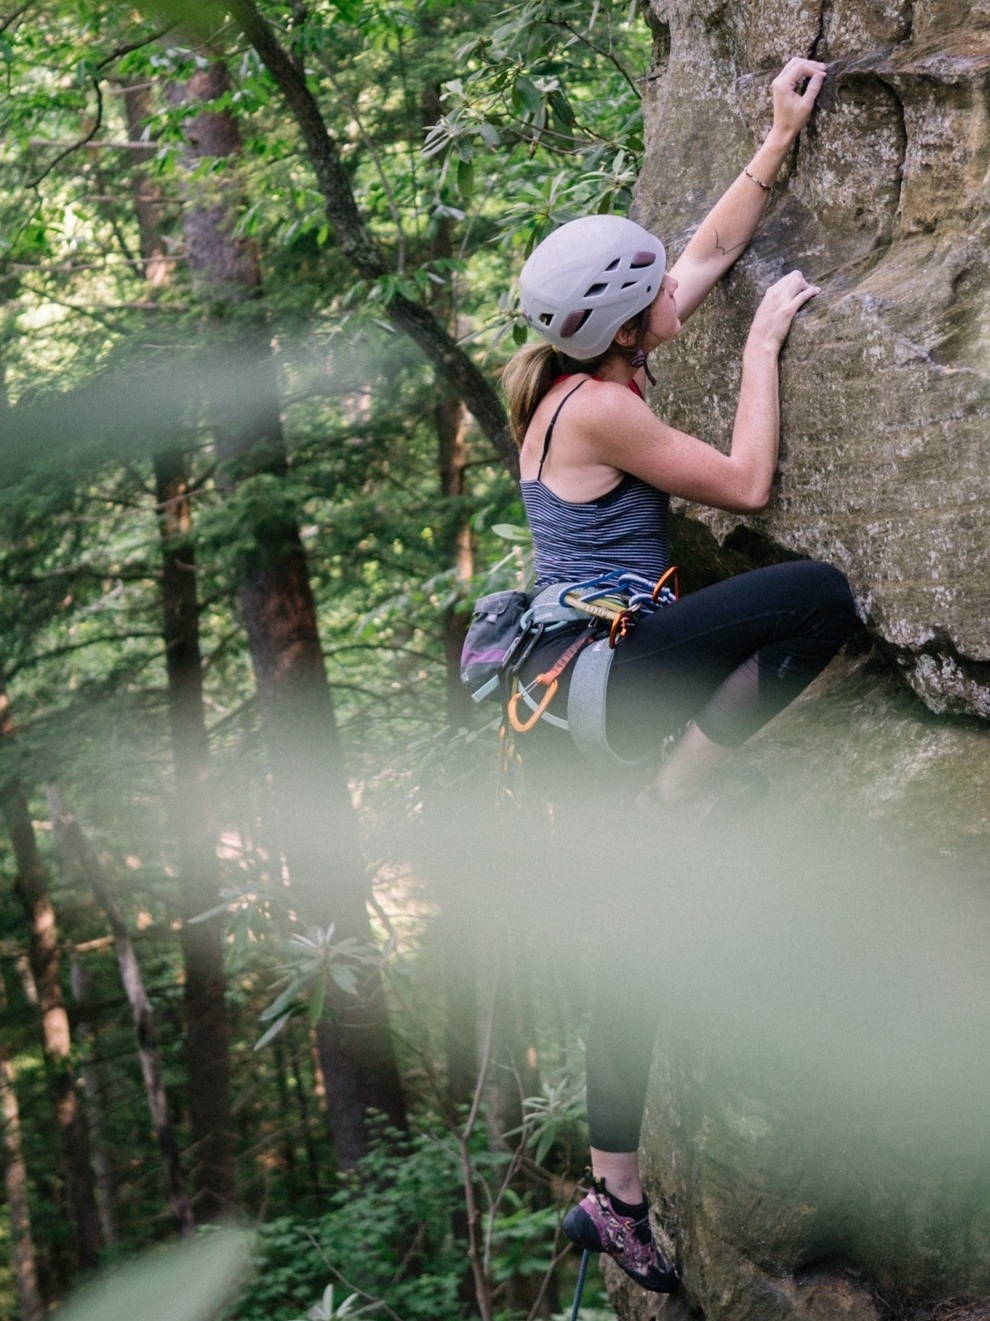 Libby Fields sends Hippy Lip Balm (5.9) onsight